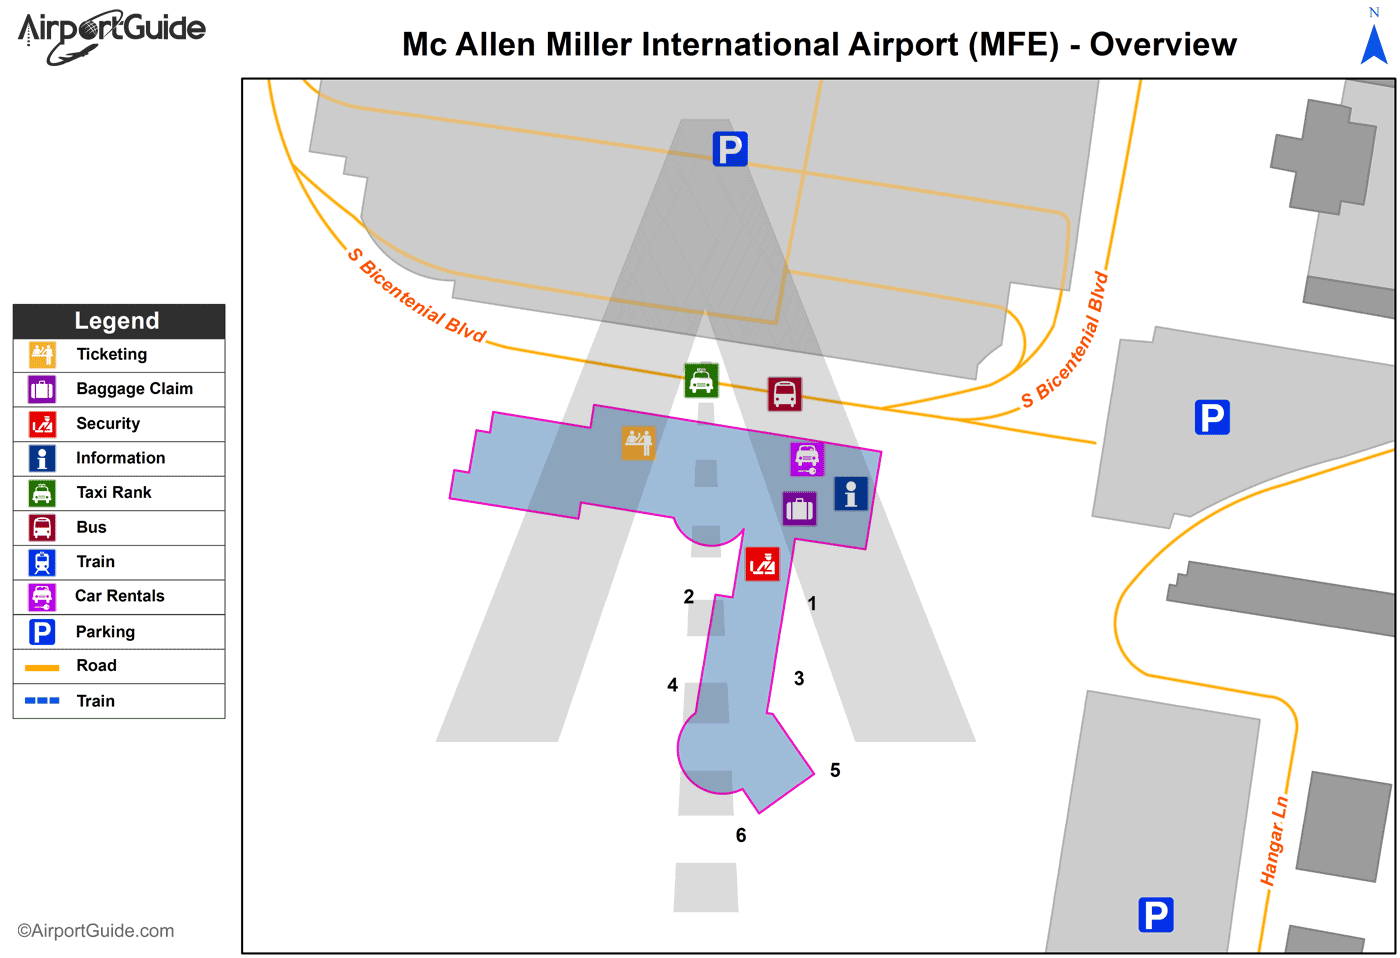 Mc Allen - Mc Allen Miller International (MFE) Airport Terminal Map - Overview